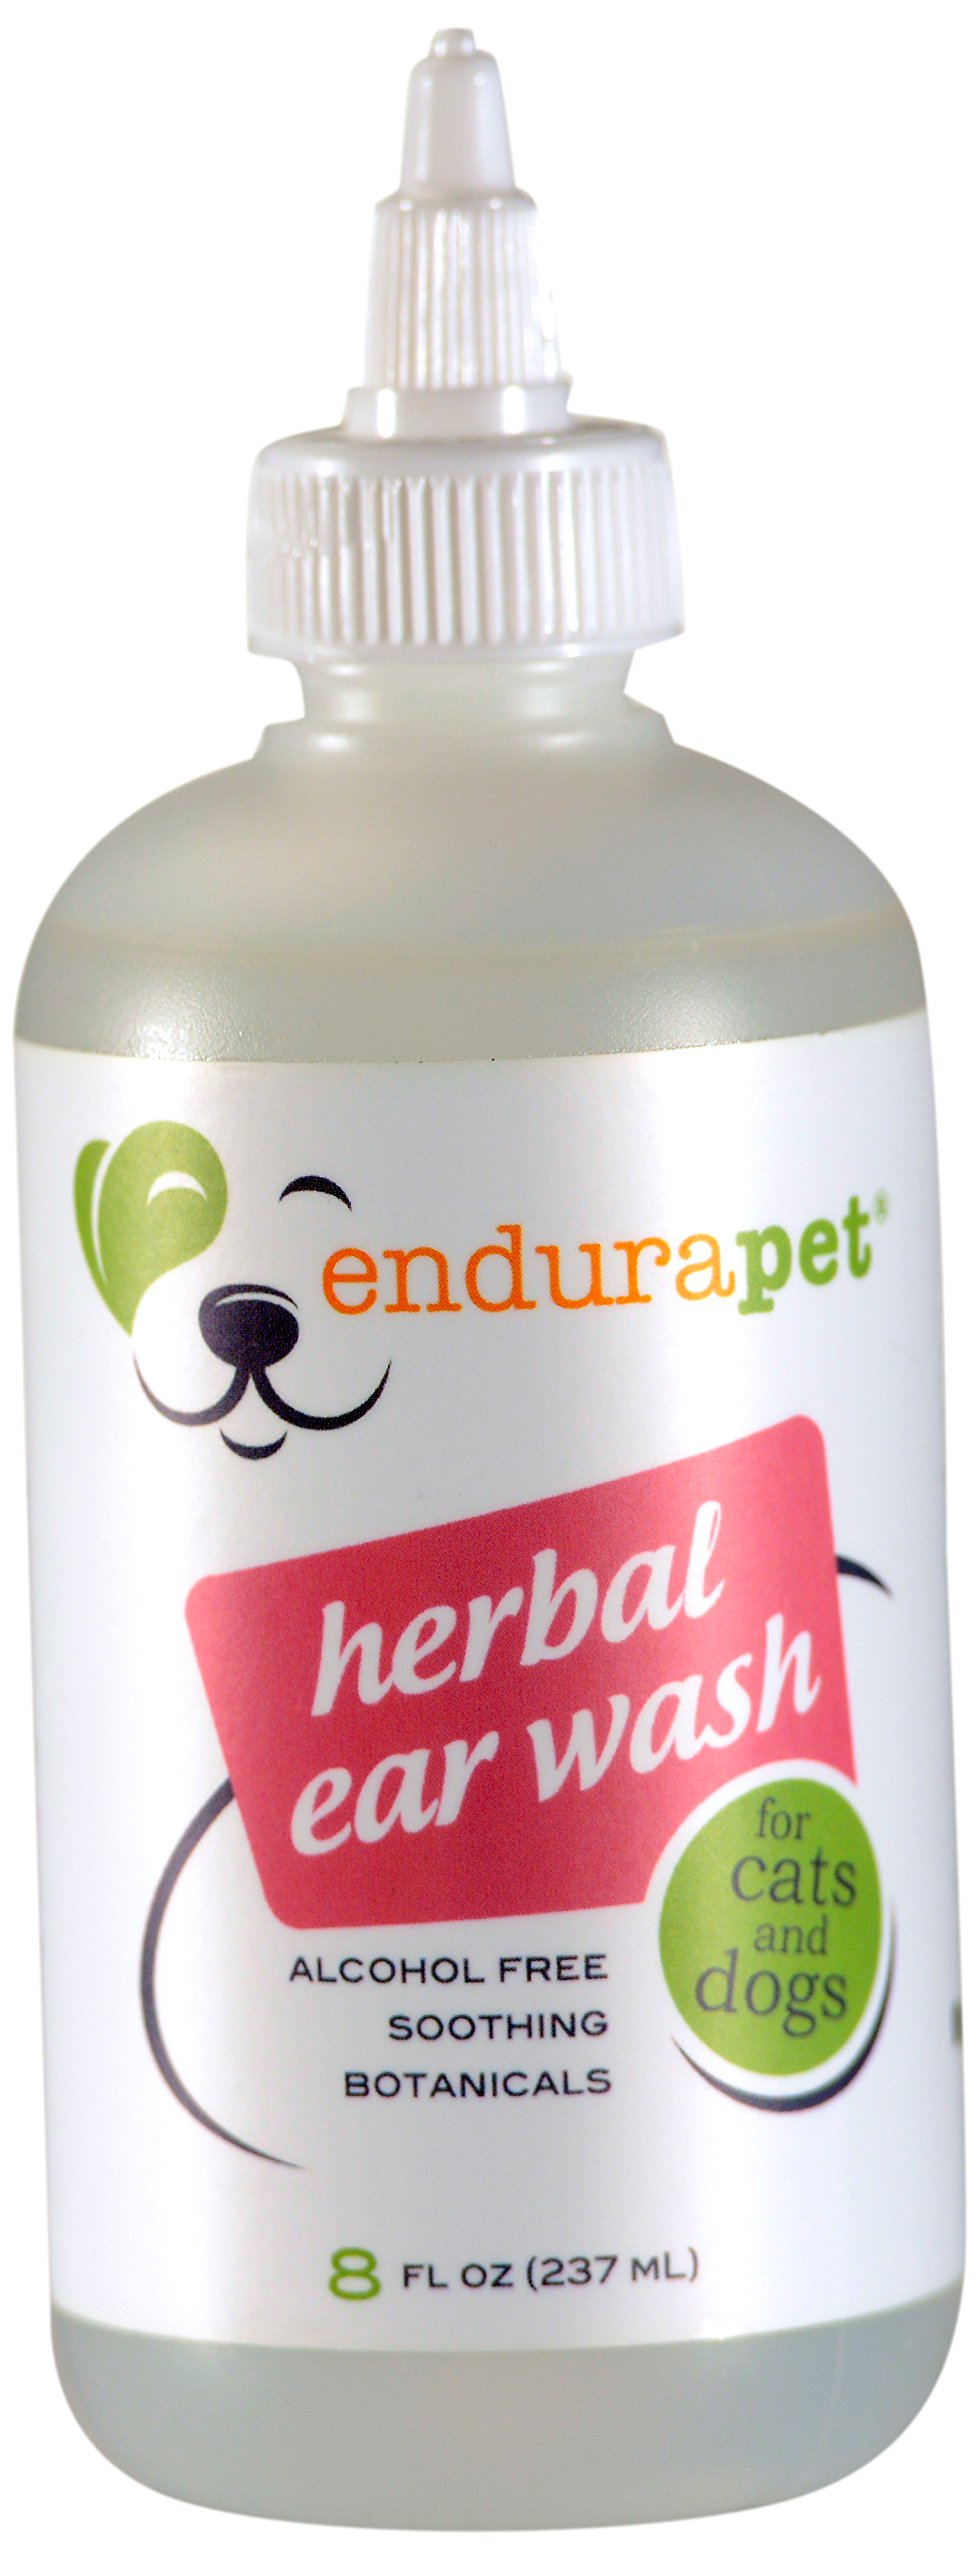 EnduraPet Herbal Ear Wash